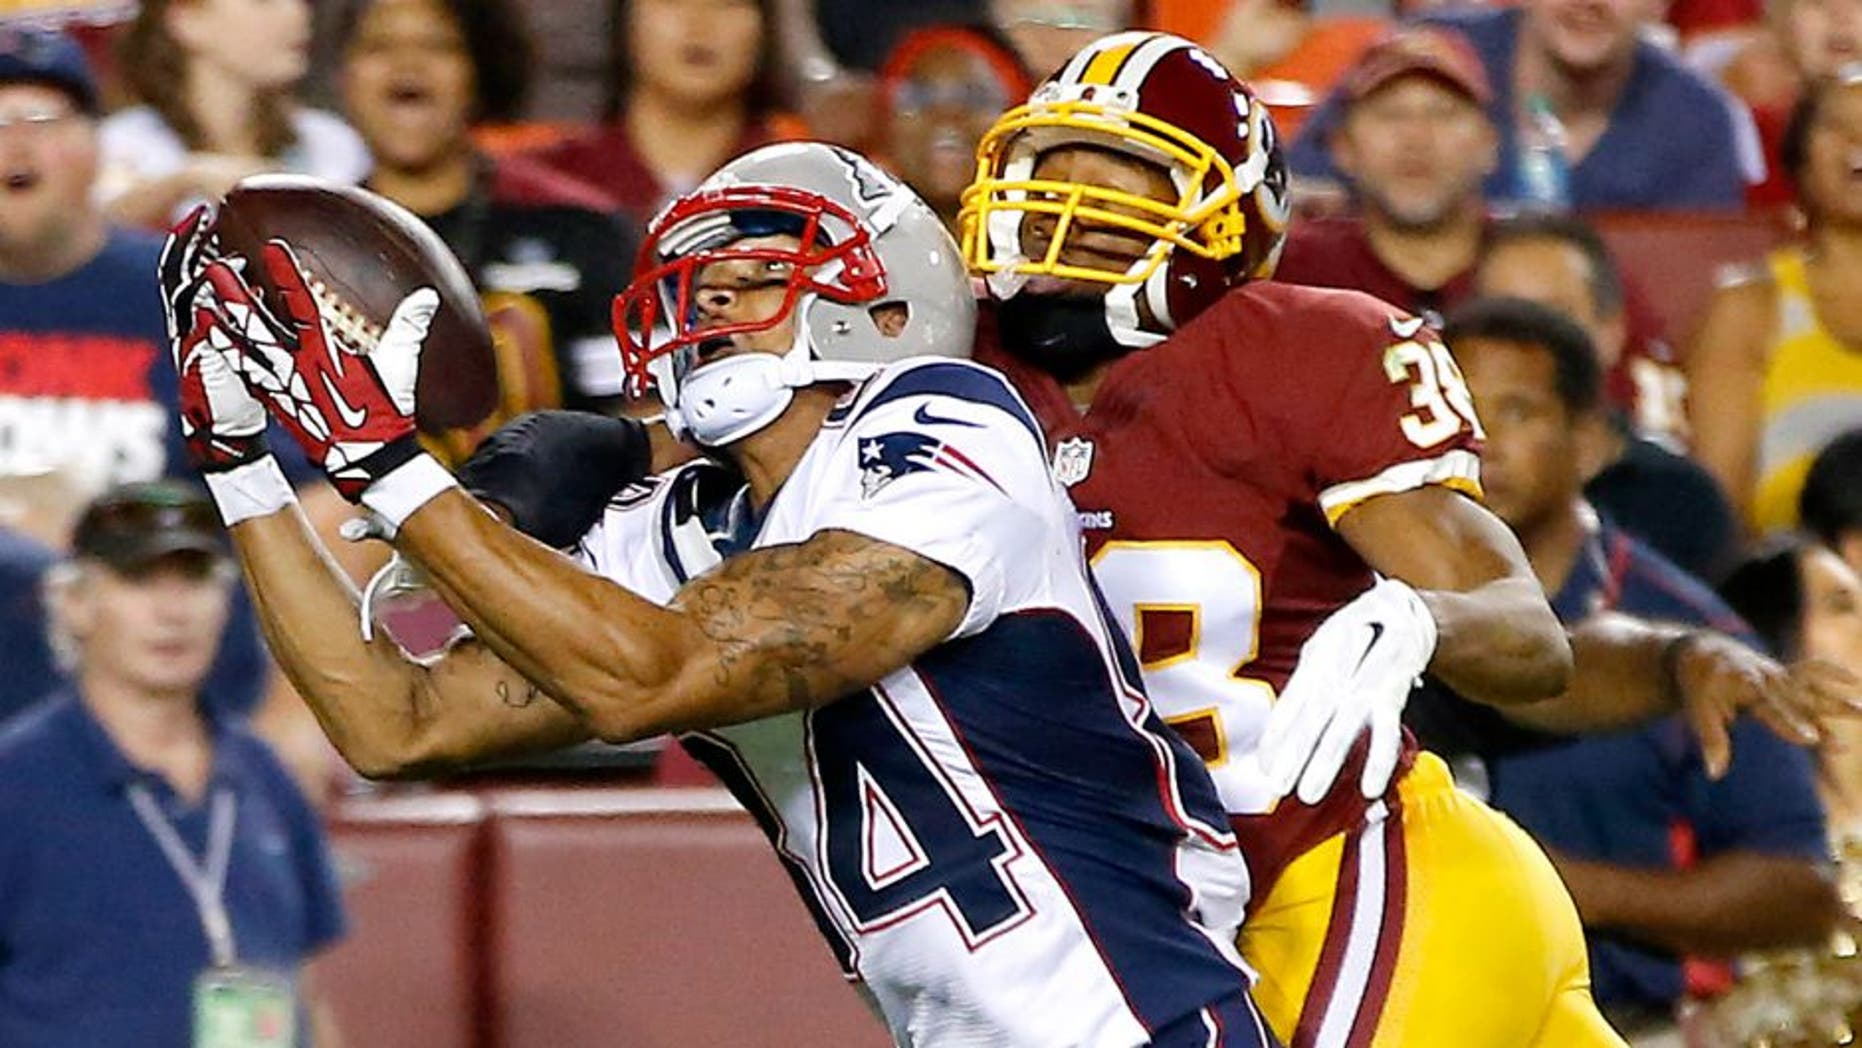 Aug 7, 2014; Landover, MD, USA; New England Patriots wide receiver Brian Tyms attempts to catch the ball as Washington Redskins defensive back Chase Minnifield (38) defends in the third quarter during a preseason game at FedEx Field. The Redskins won 23-6. Mandatory Credit: Geoff Burke-USA TODAY Sports